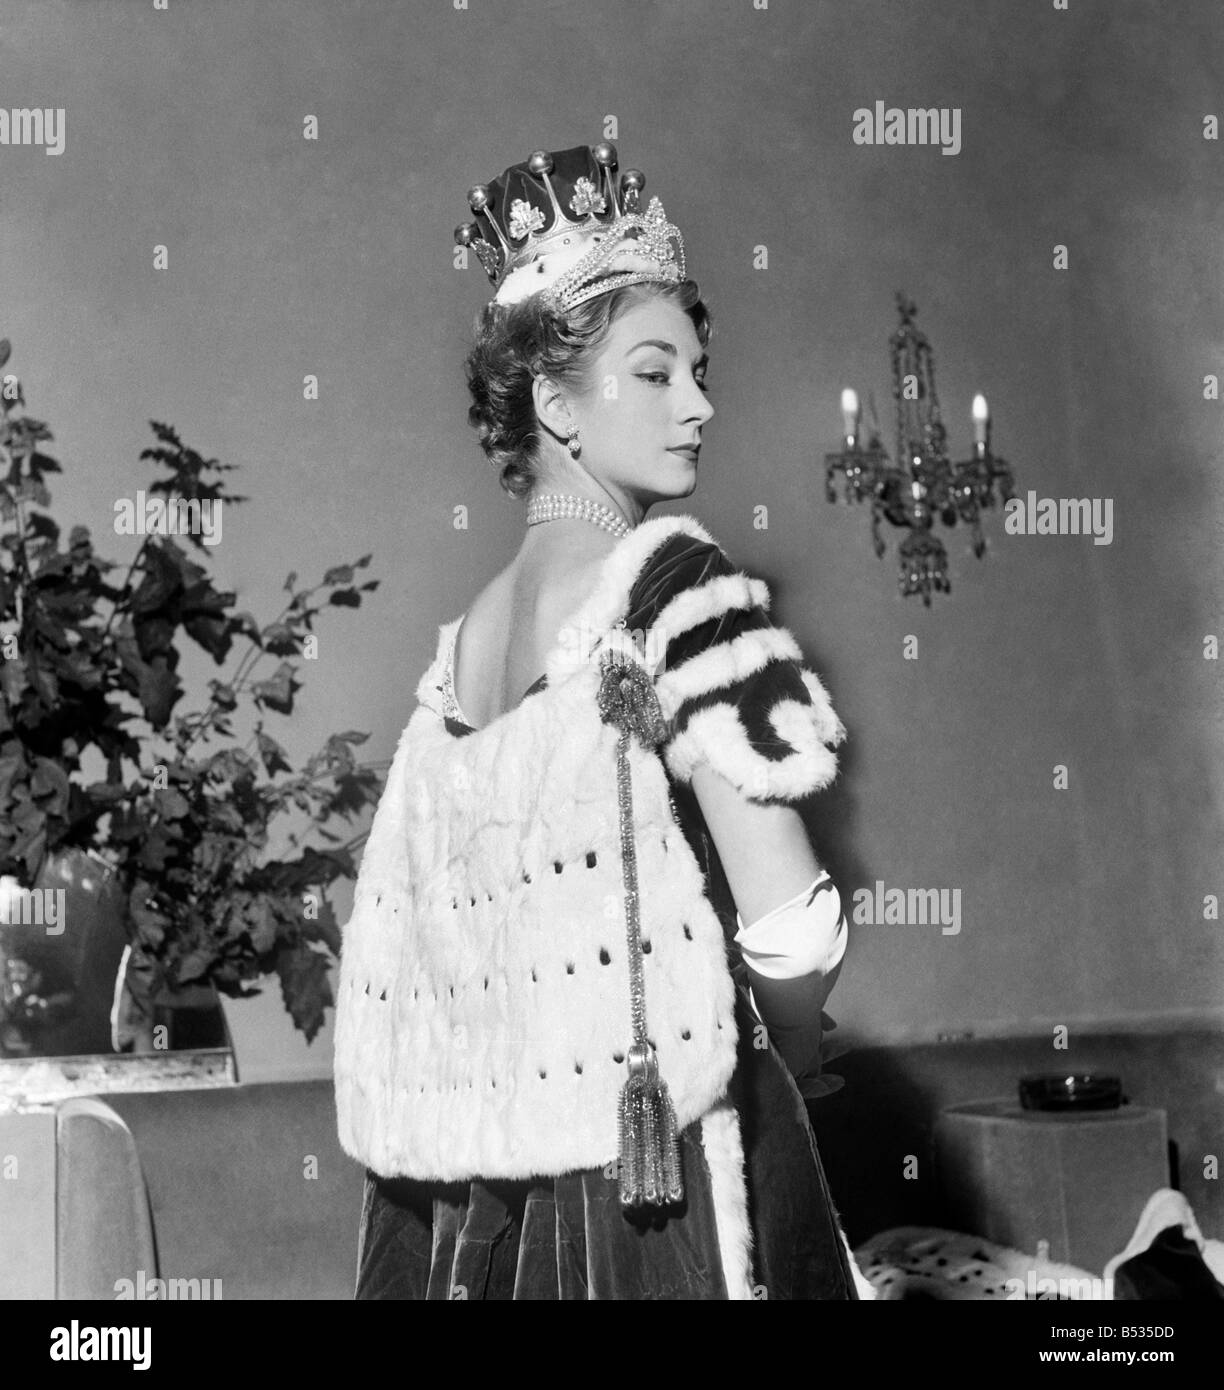 Norman Hartnell's coronation robes for peeresses. October 1952 C5190-001 - Stock Image